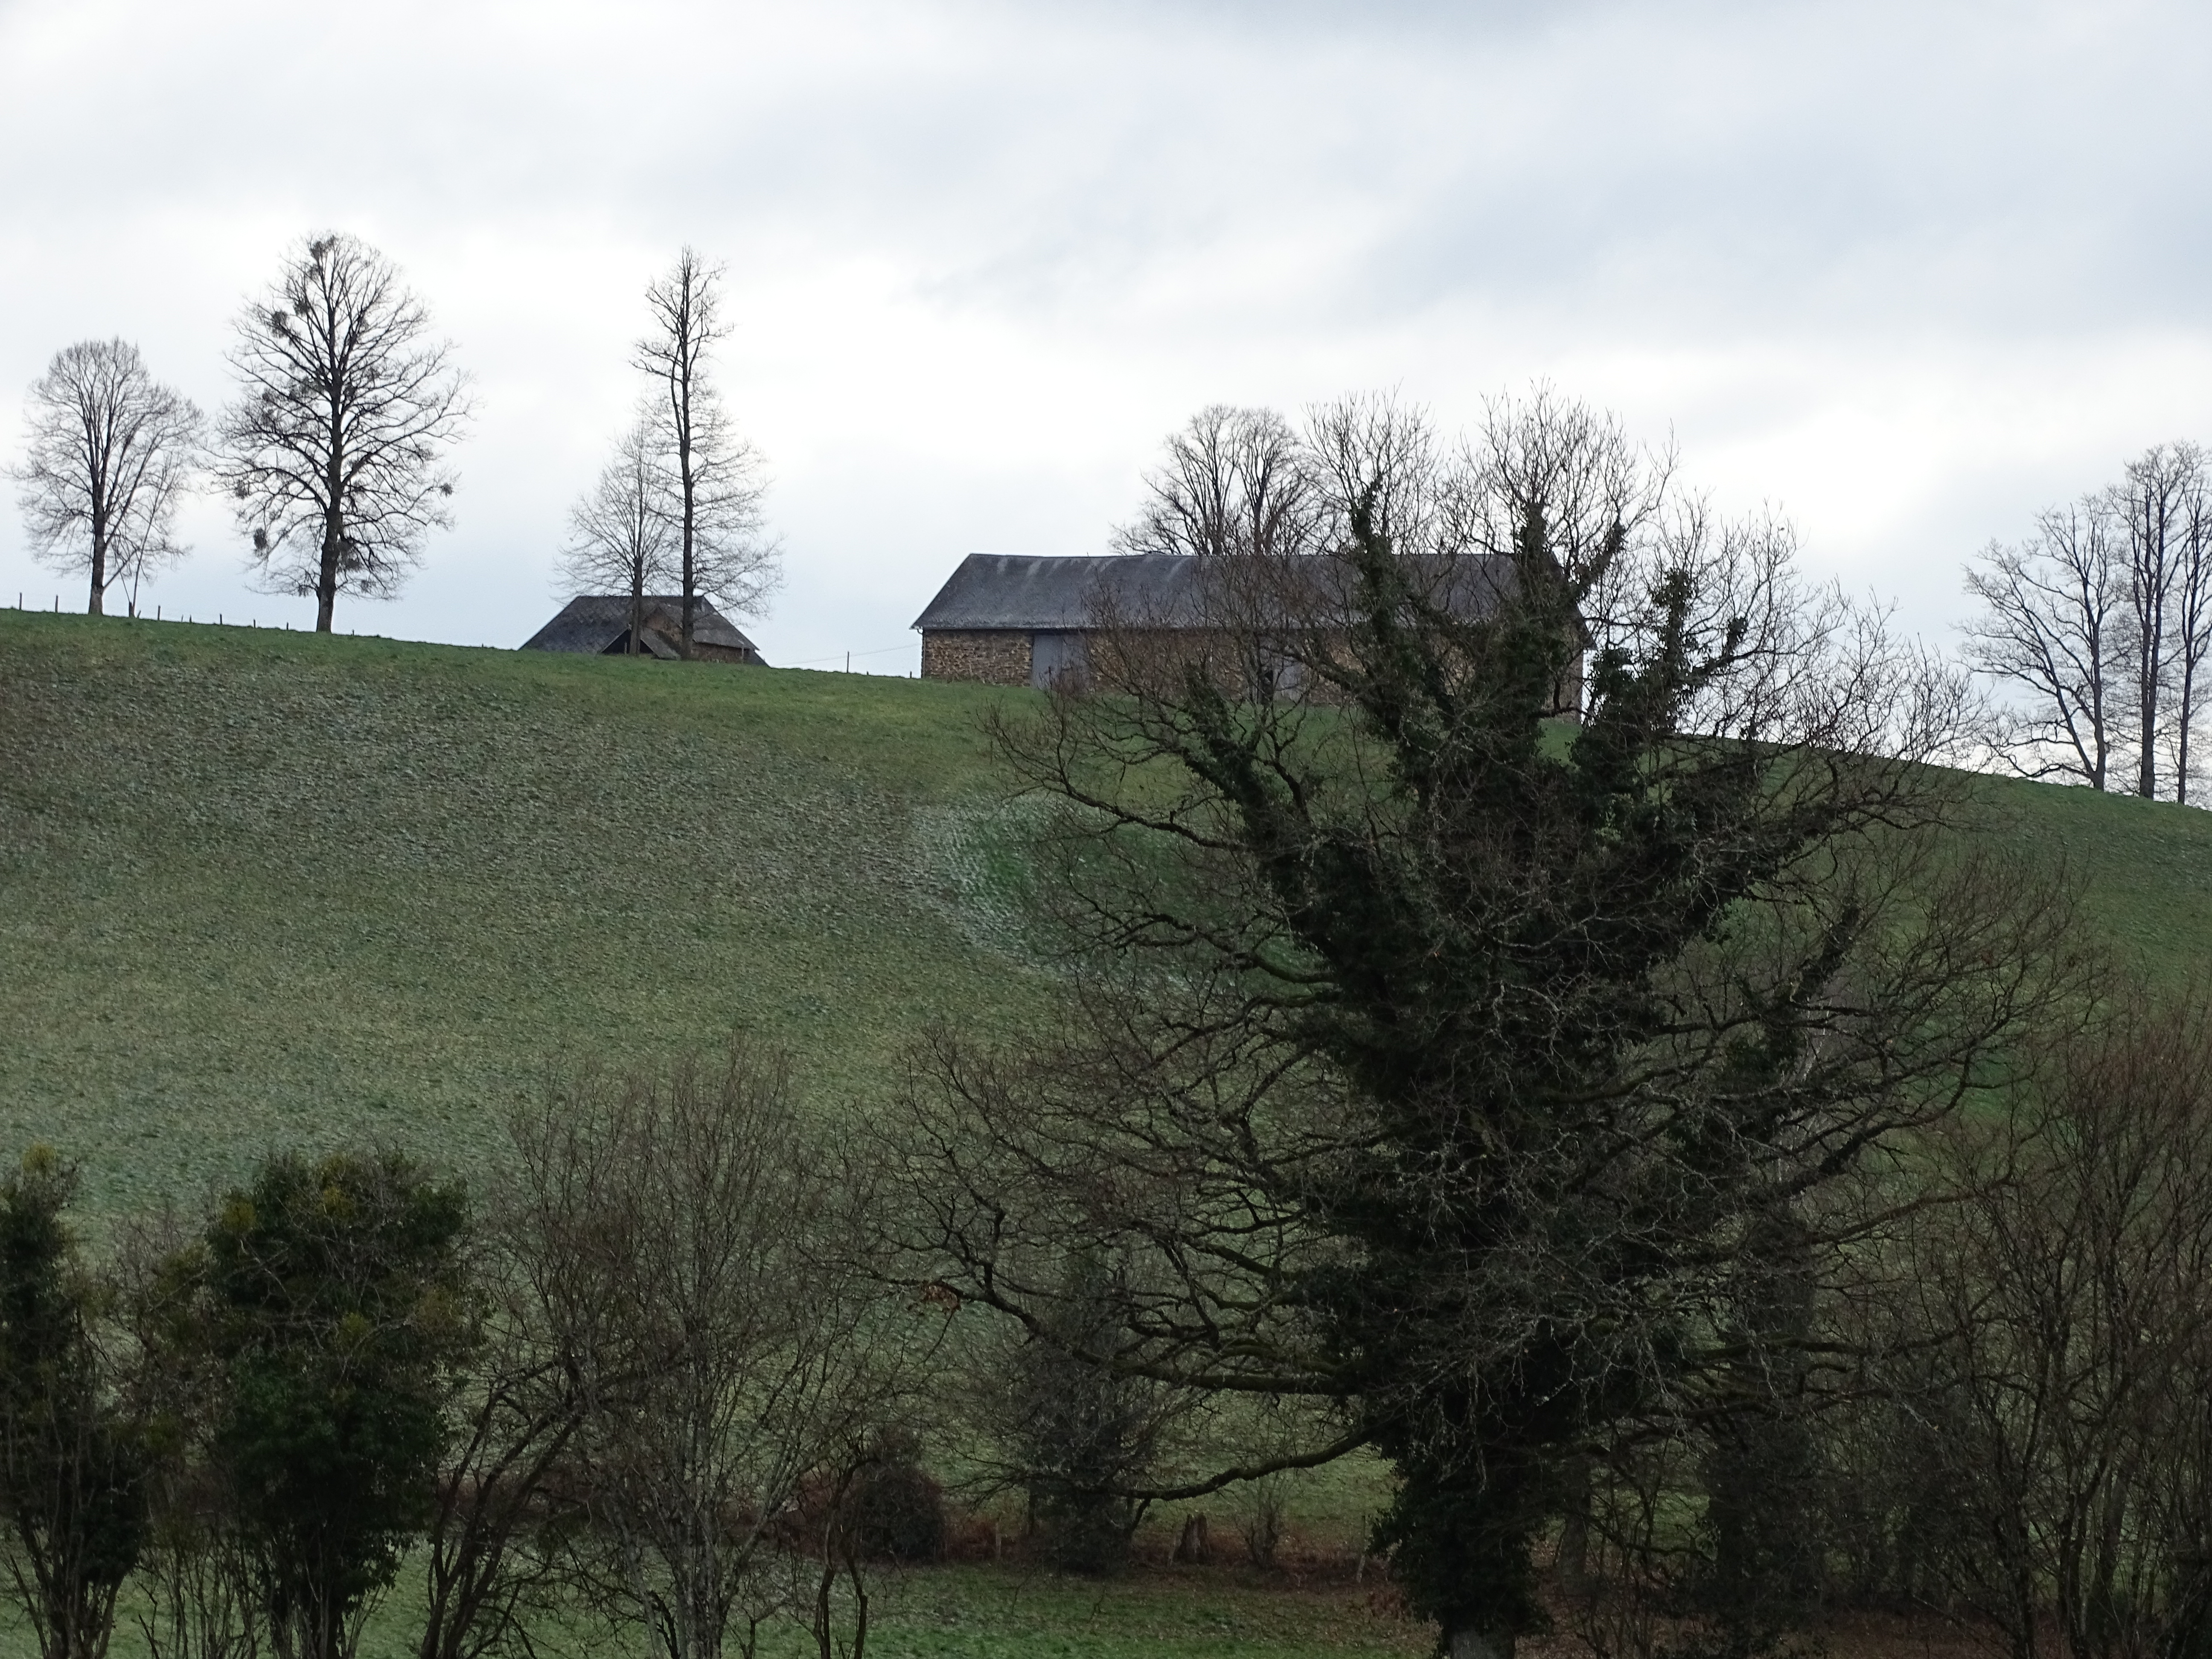 Local barn on top of the hill